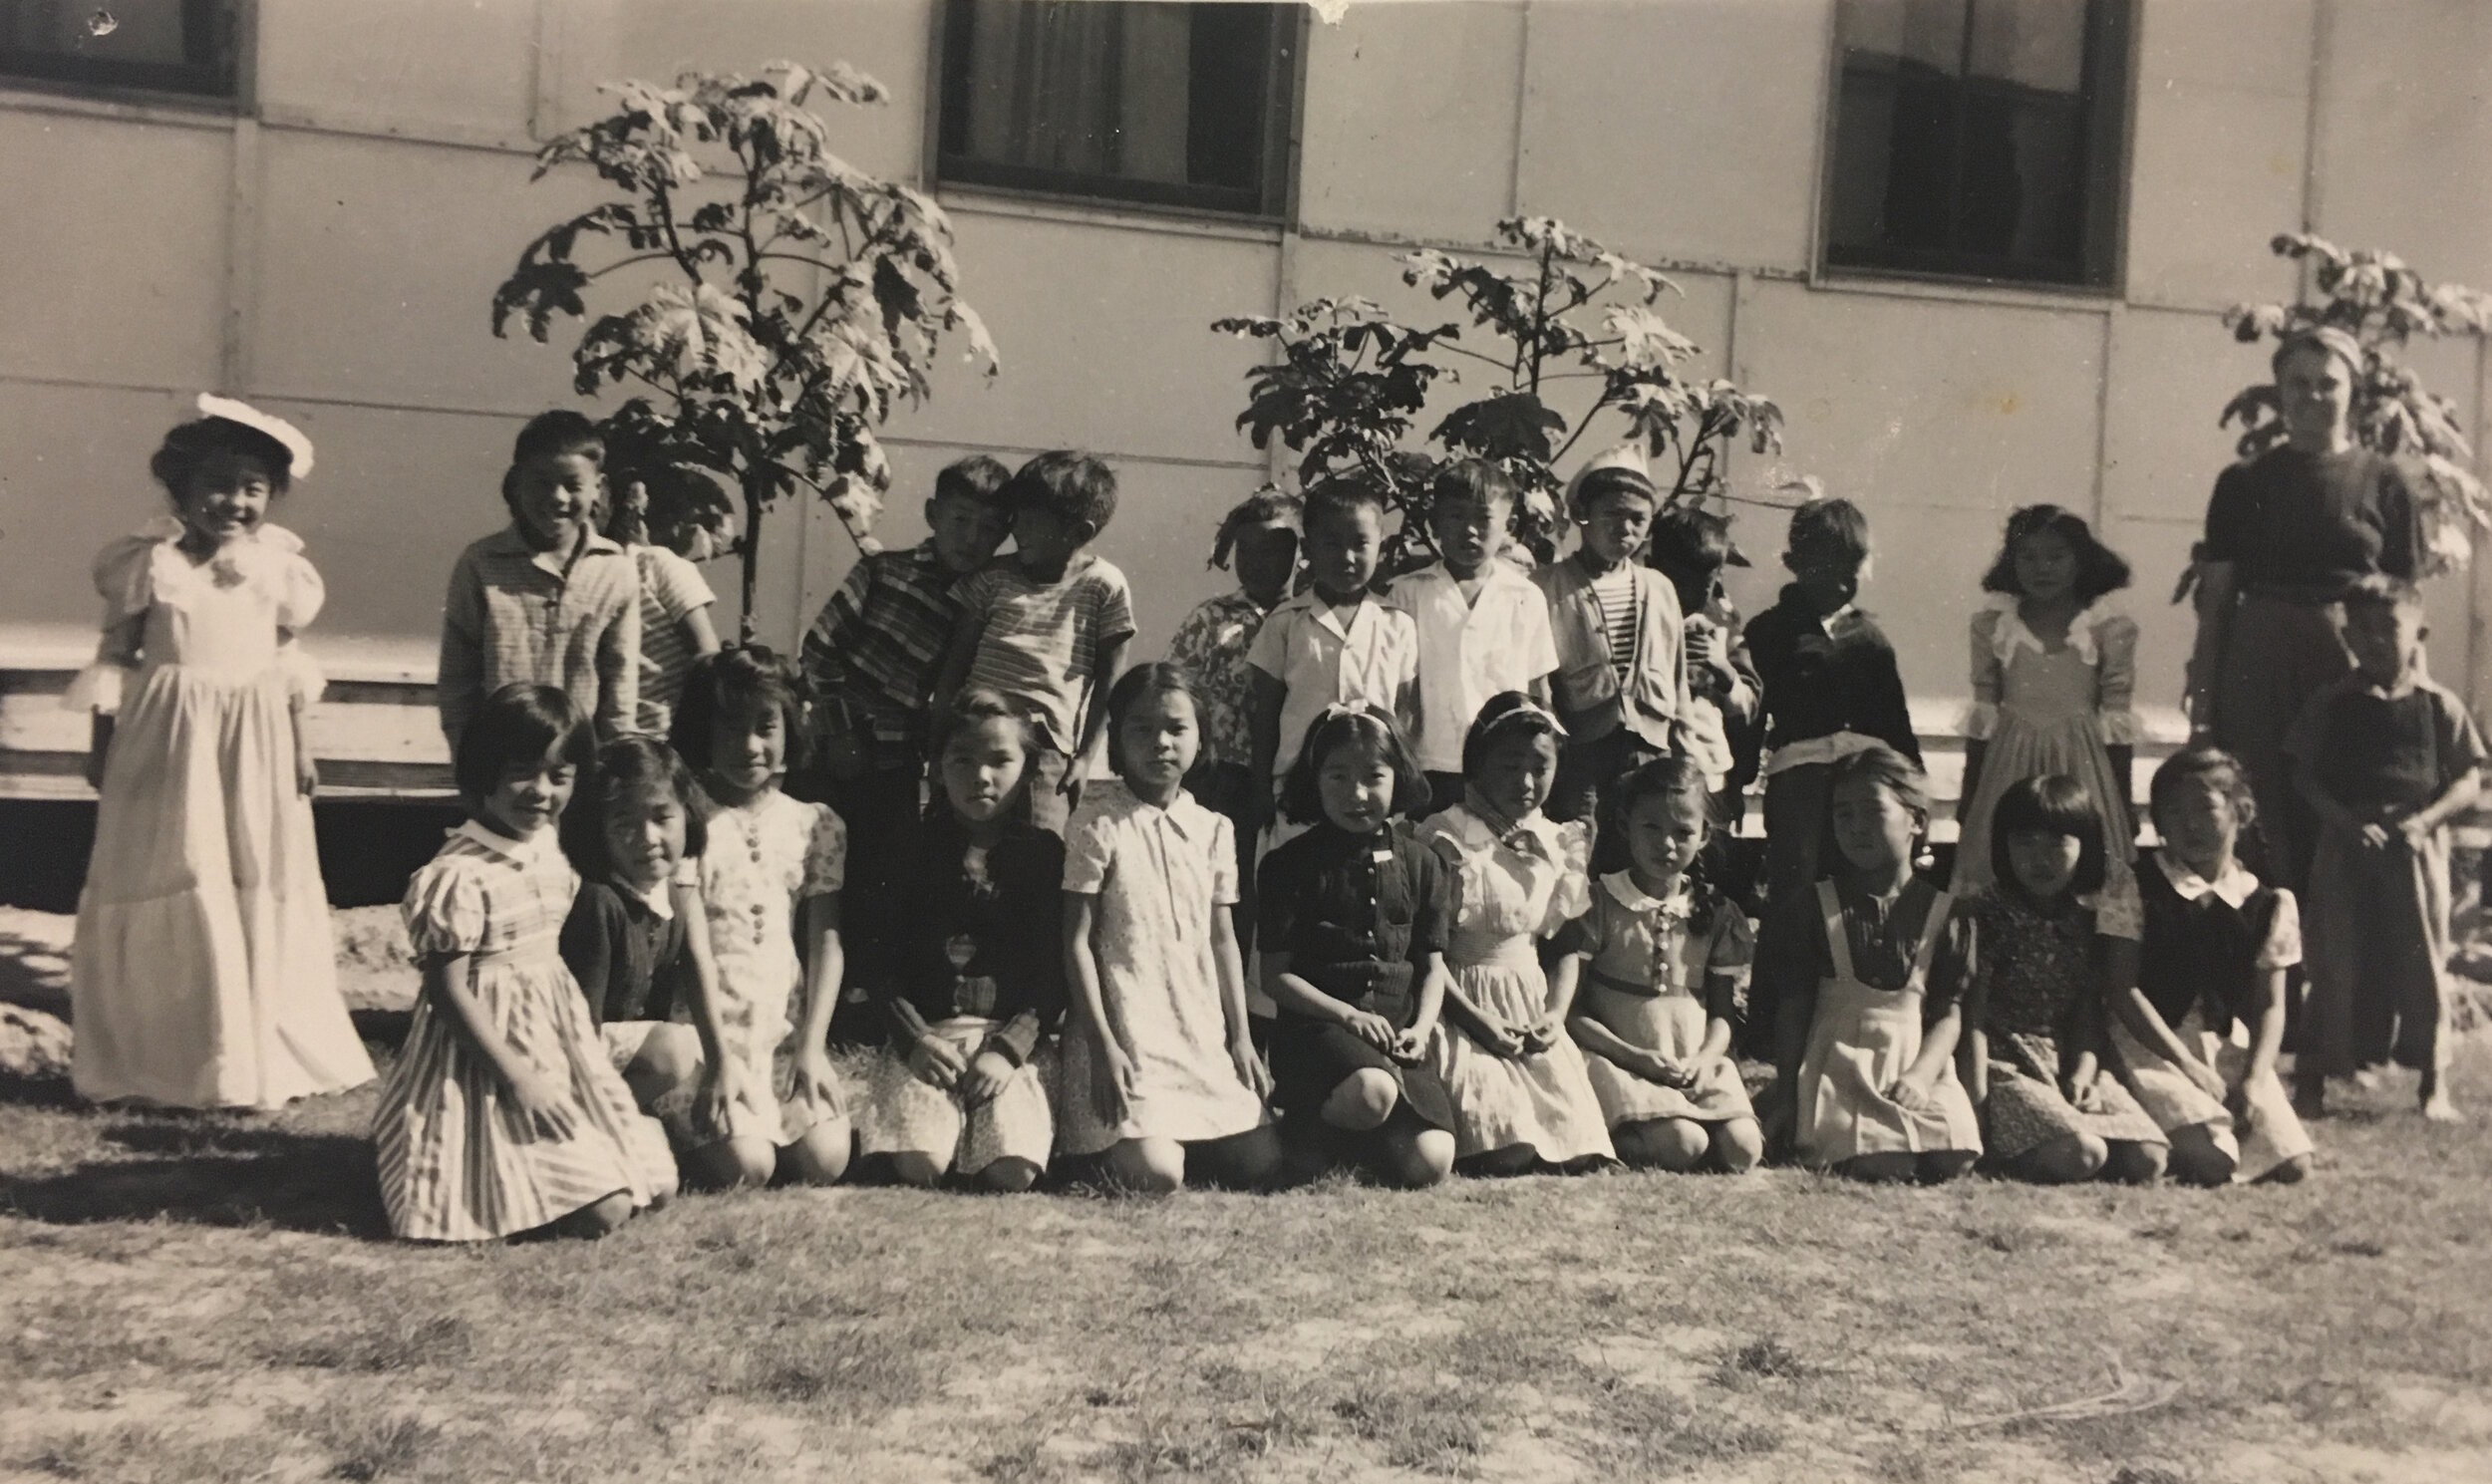 Yoshiko's third grade class in Gila River on Halloween. Yoshiko is in the first row, second from left.